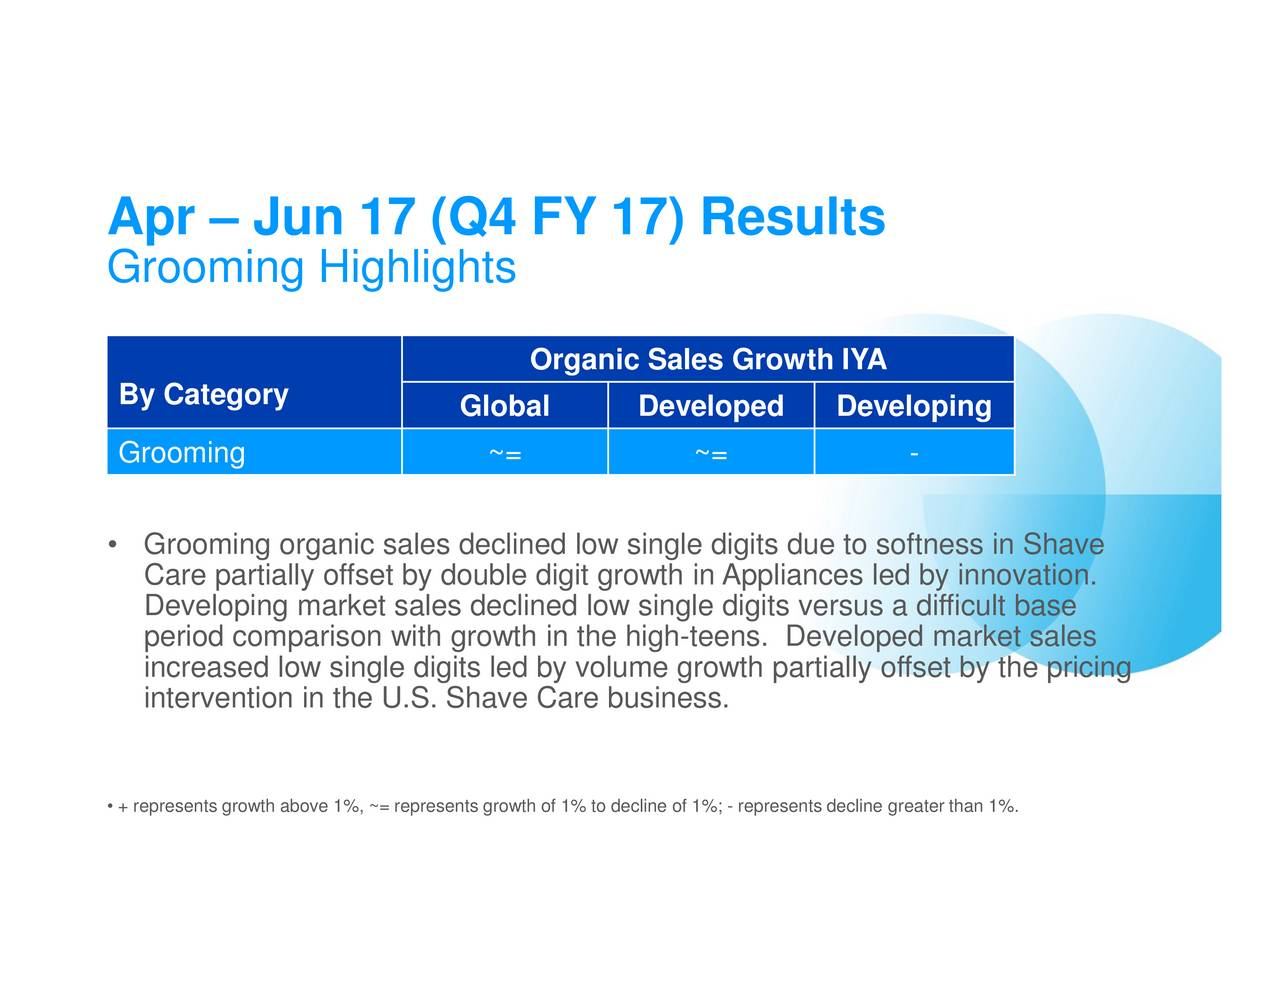 business report on procter and gamble Analyze procter & gamble company (the) (pg) company stock report - get free stock reports for procter & gamble company (the) and all the companies you research at nasdaqcom.